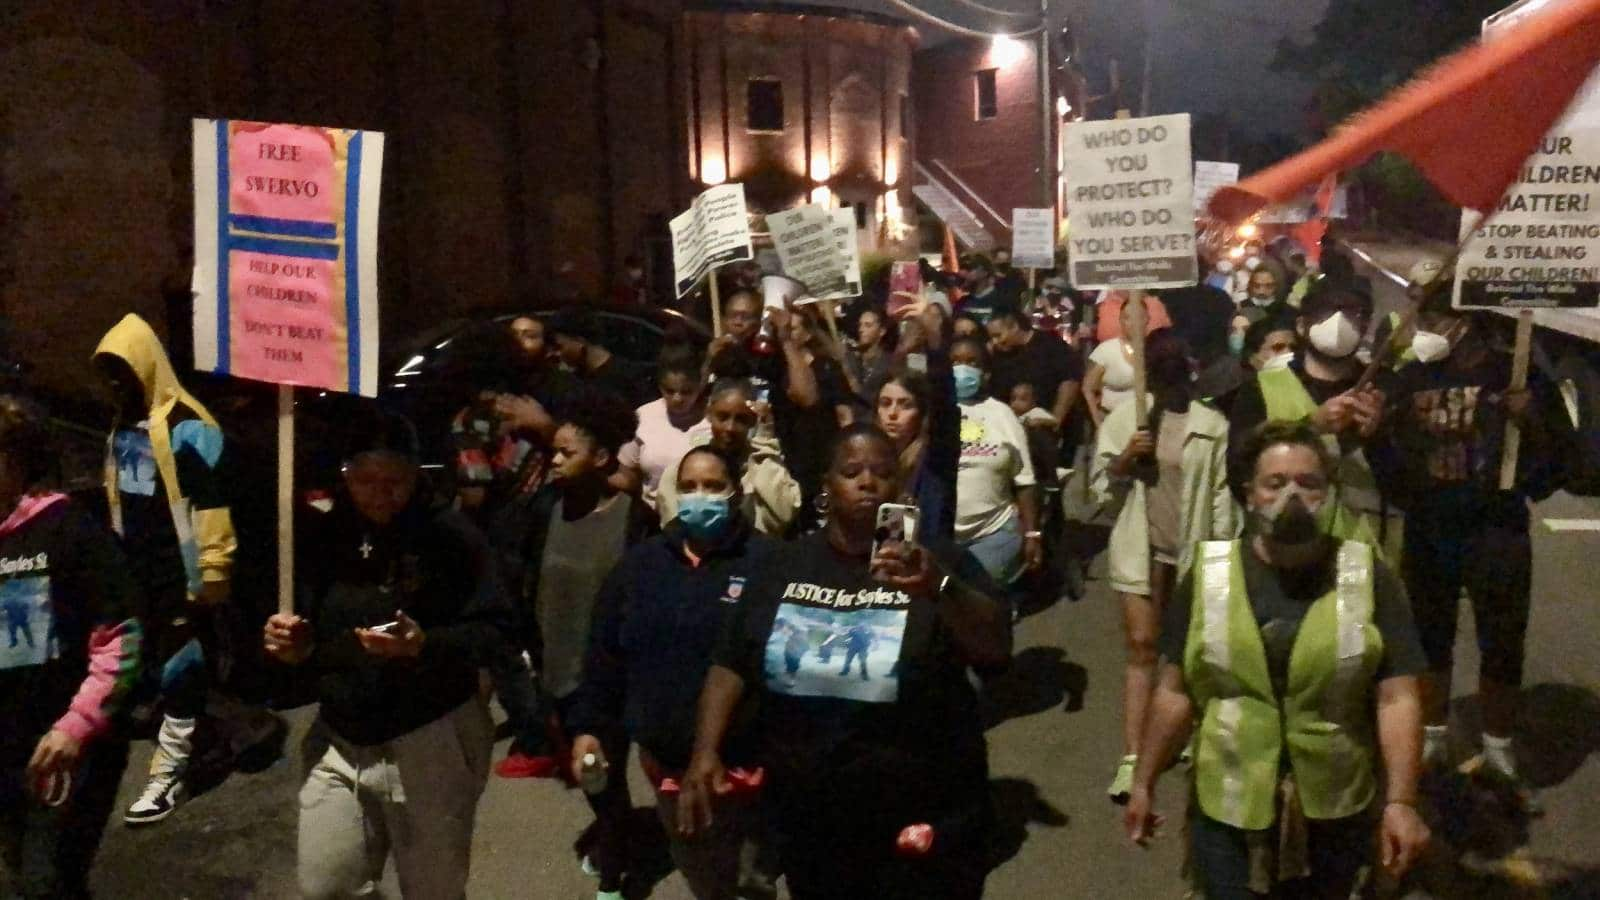 """Families march against police violence – """"Stop beating our children!"""""""